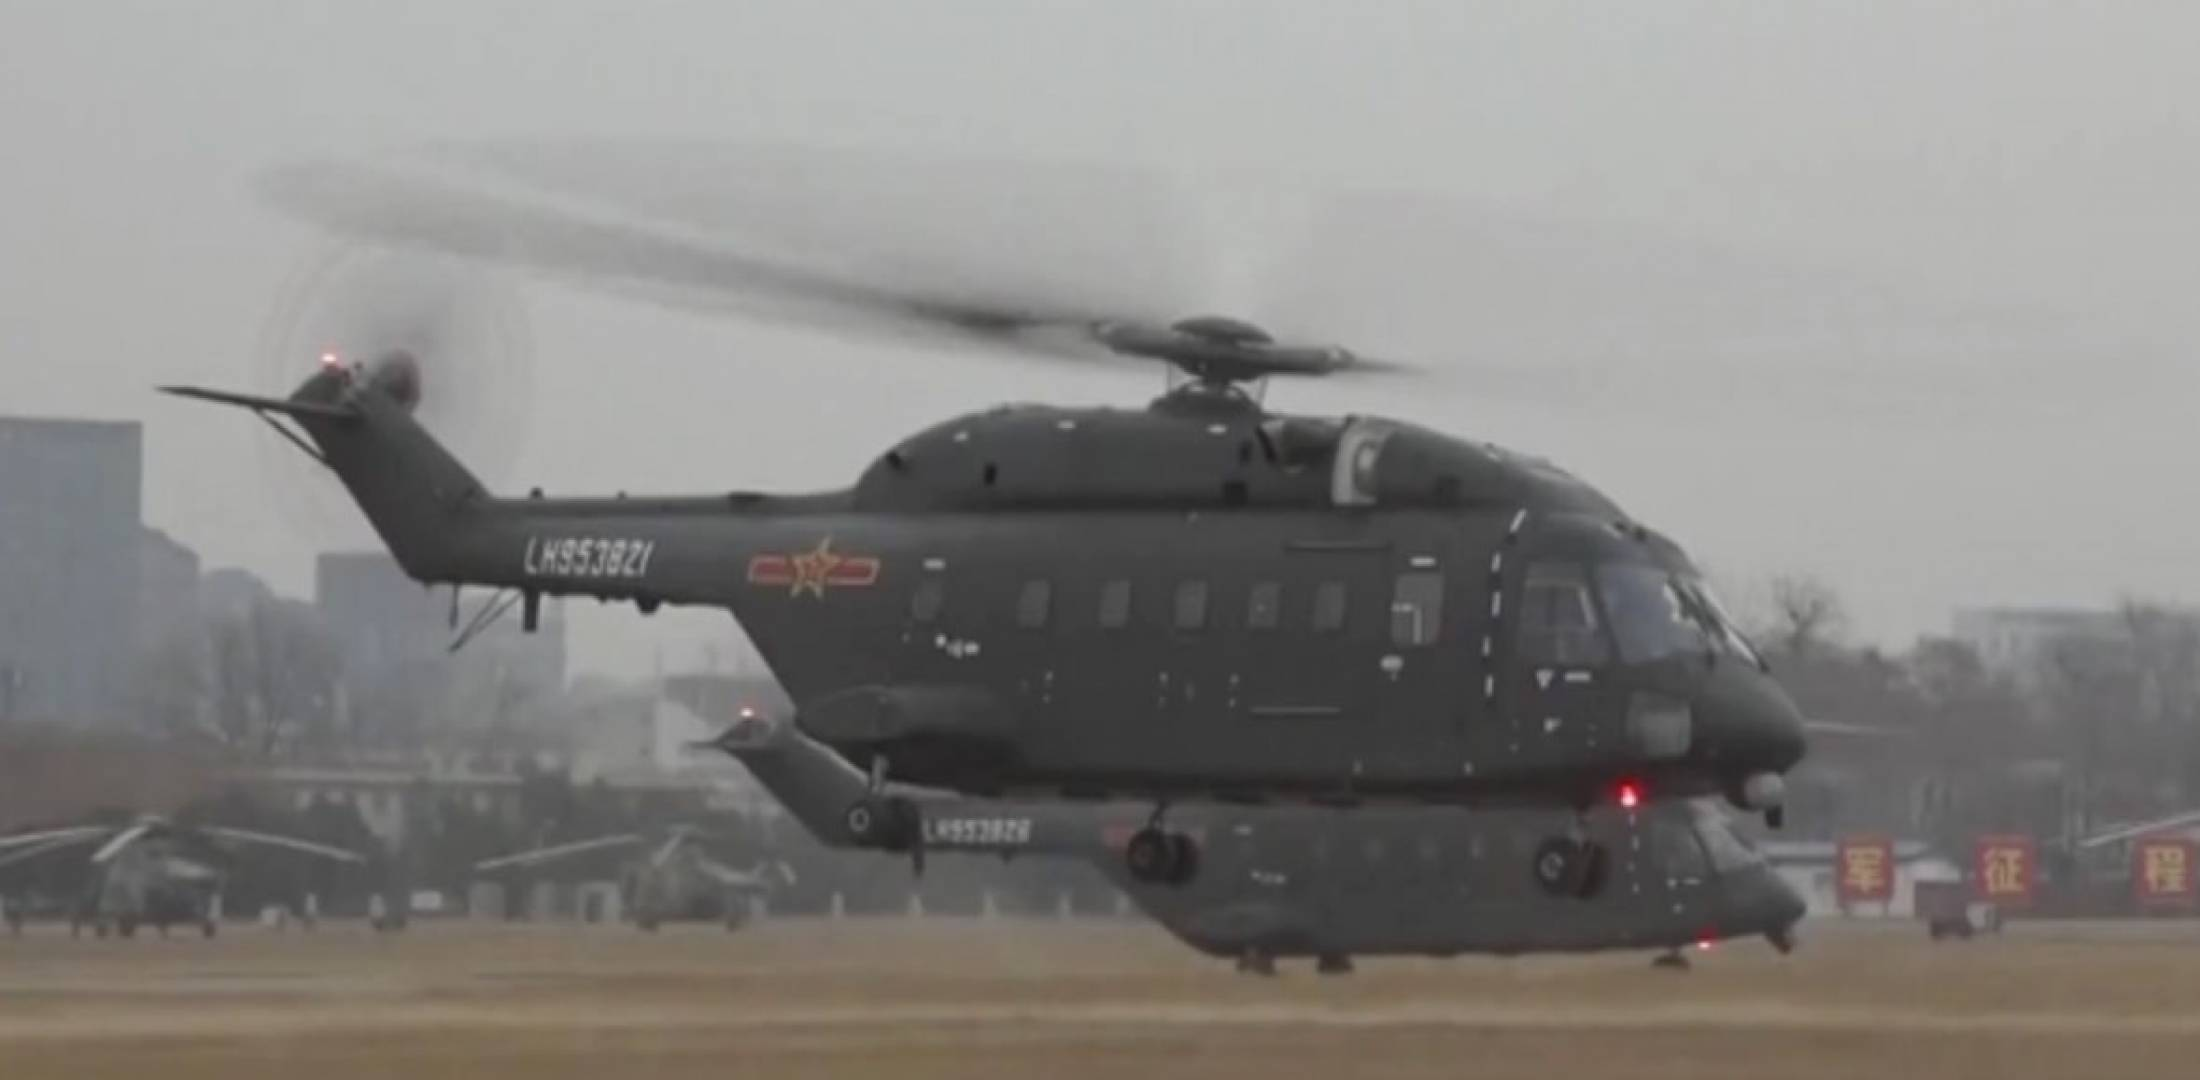 Z-8G helicopters in flight